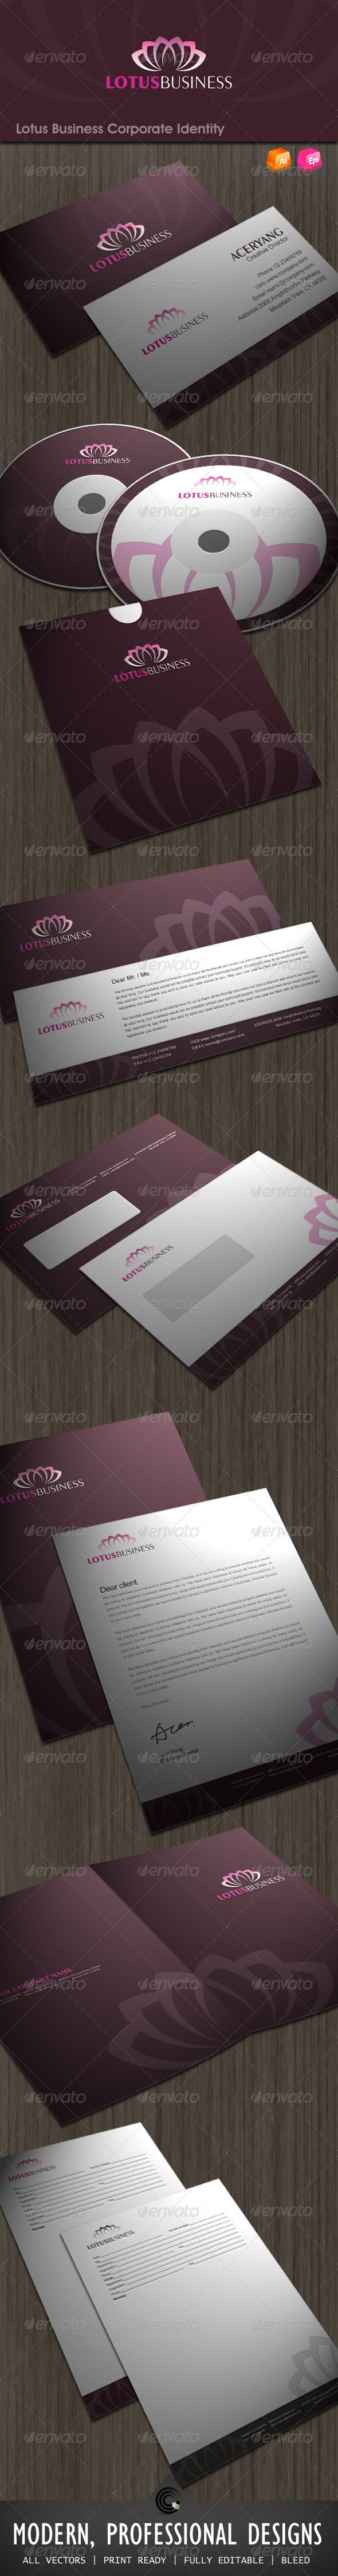 Lotus Business Corporate Identity - Stationery Print Templates